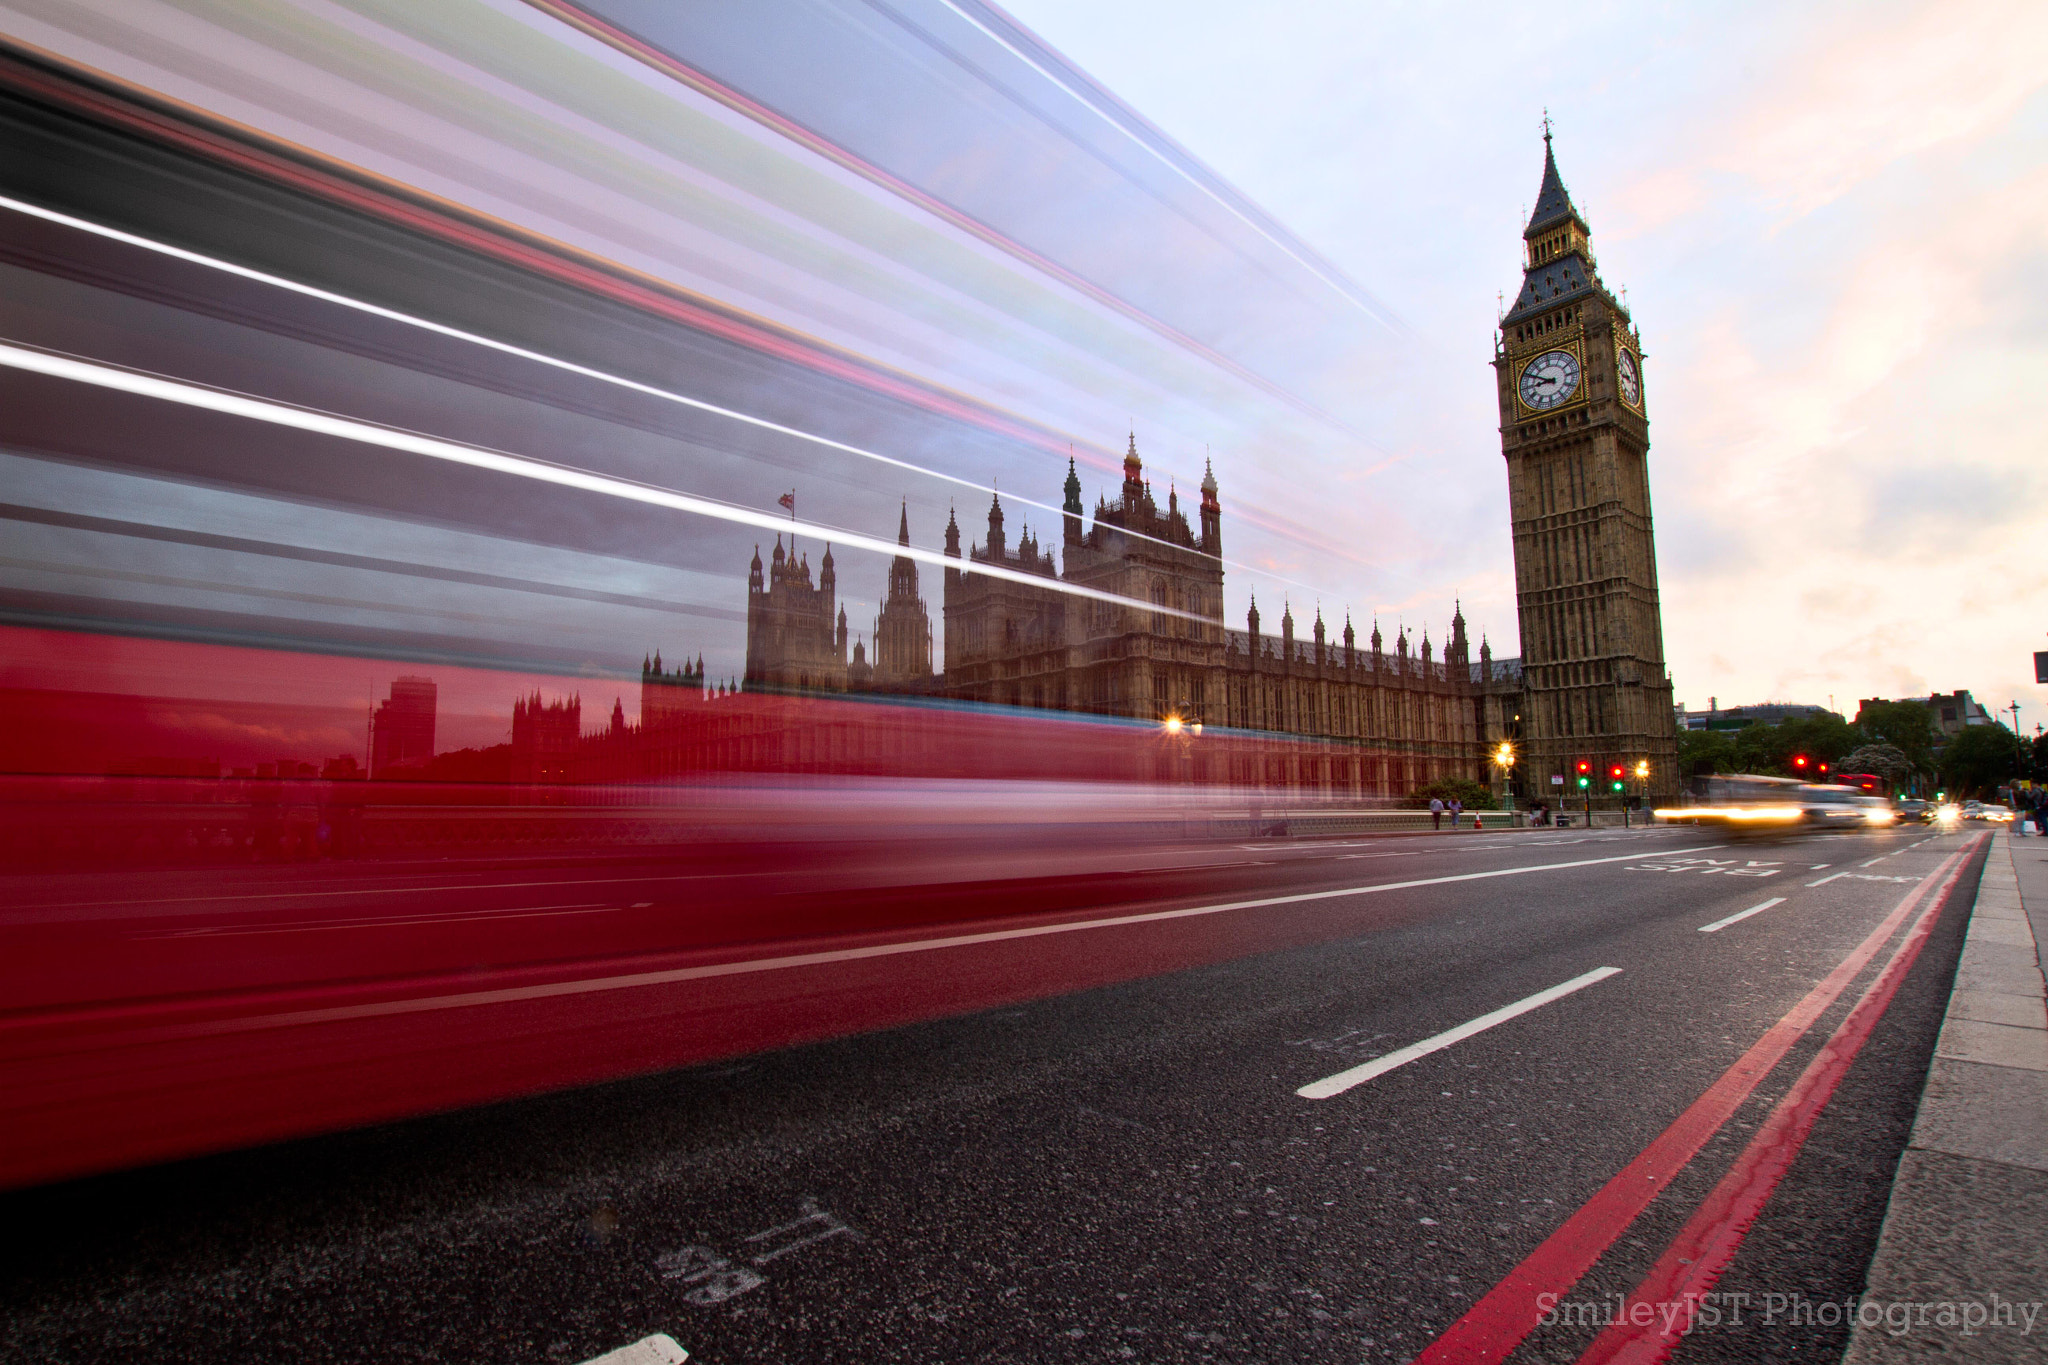 Photograph A Constructive Day in London by Jamil Teja on 500px